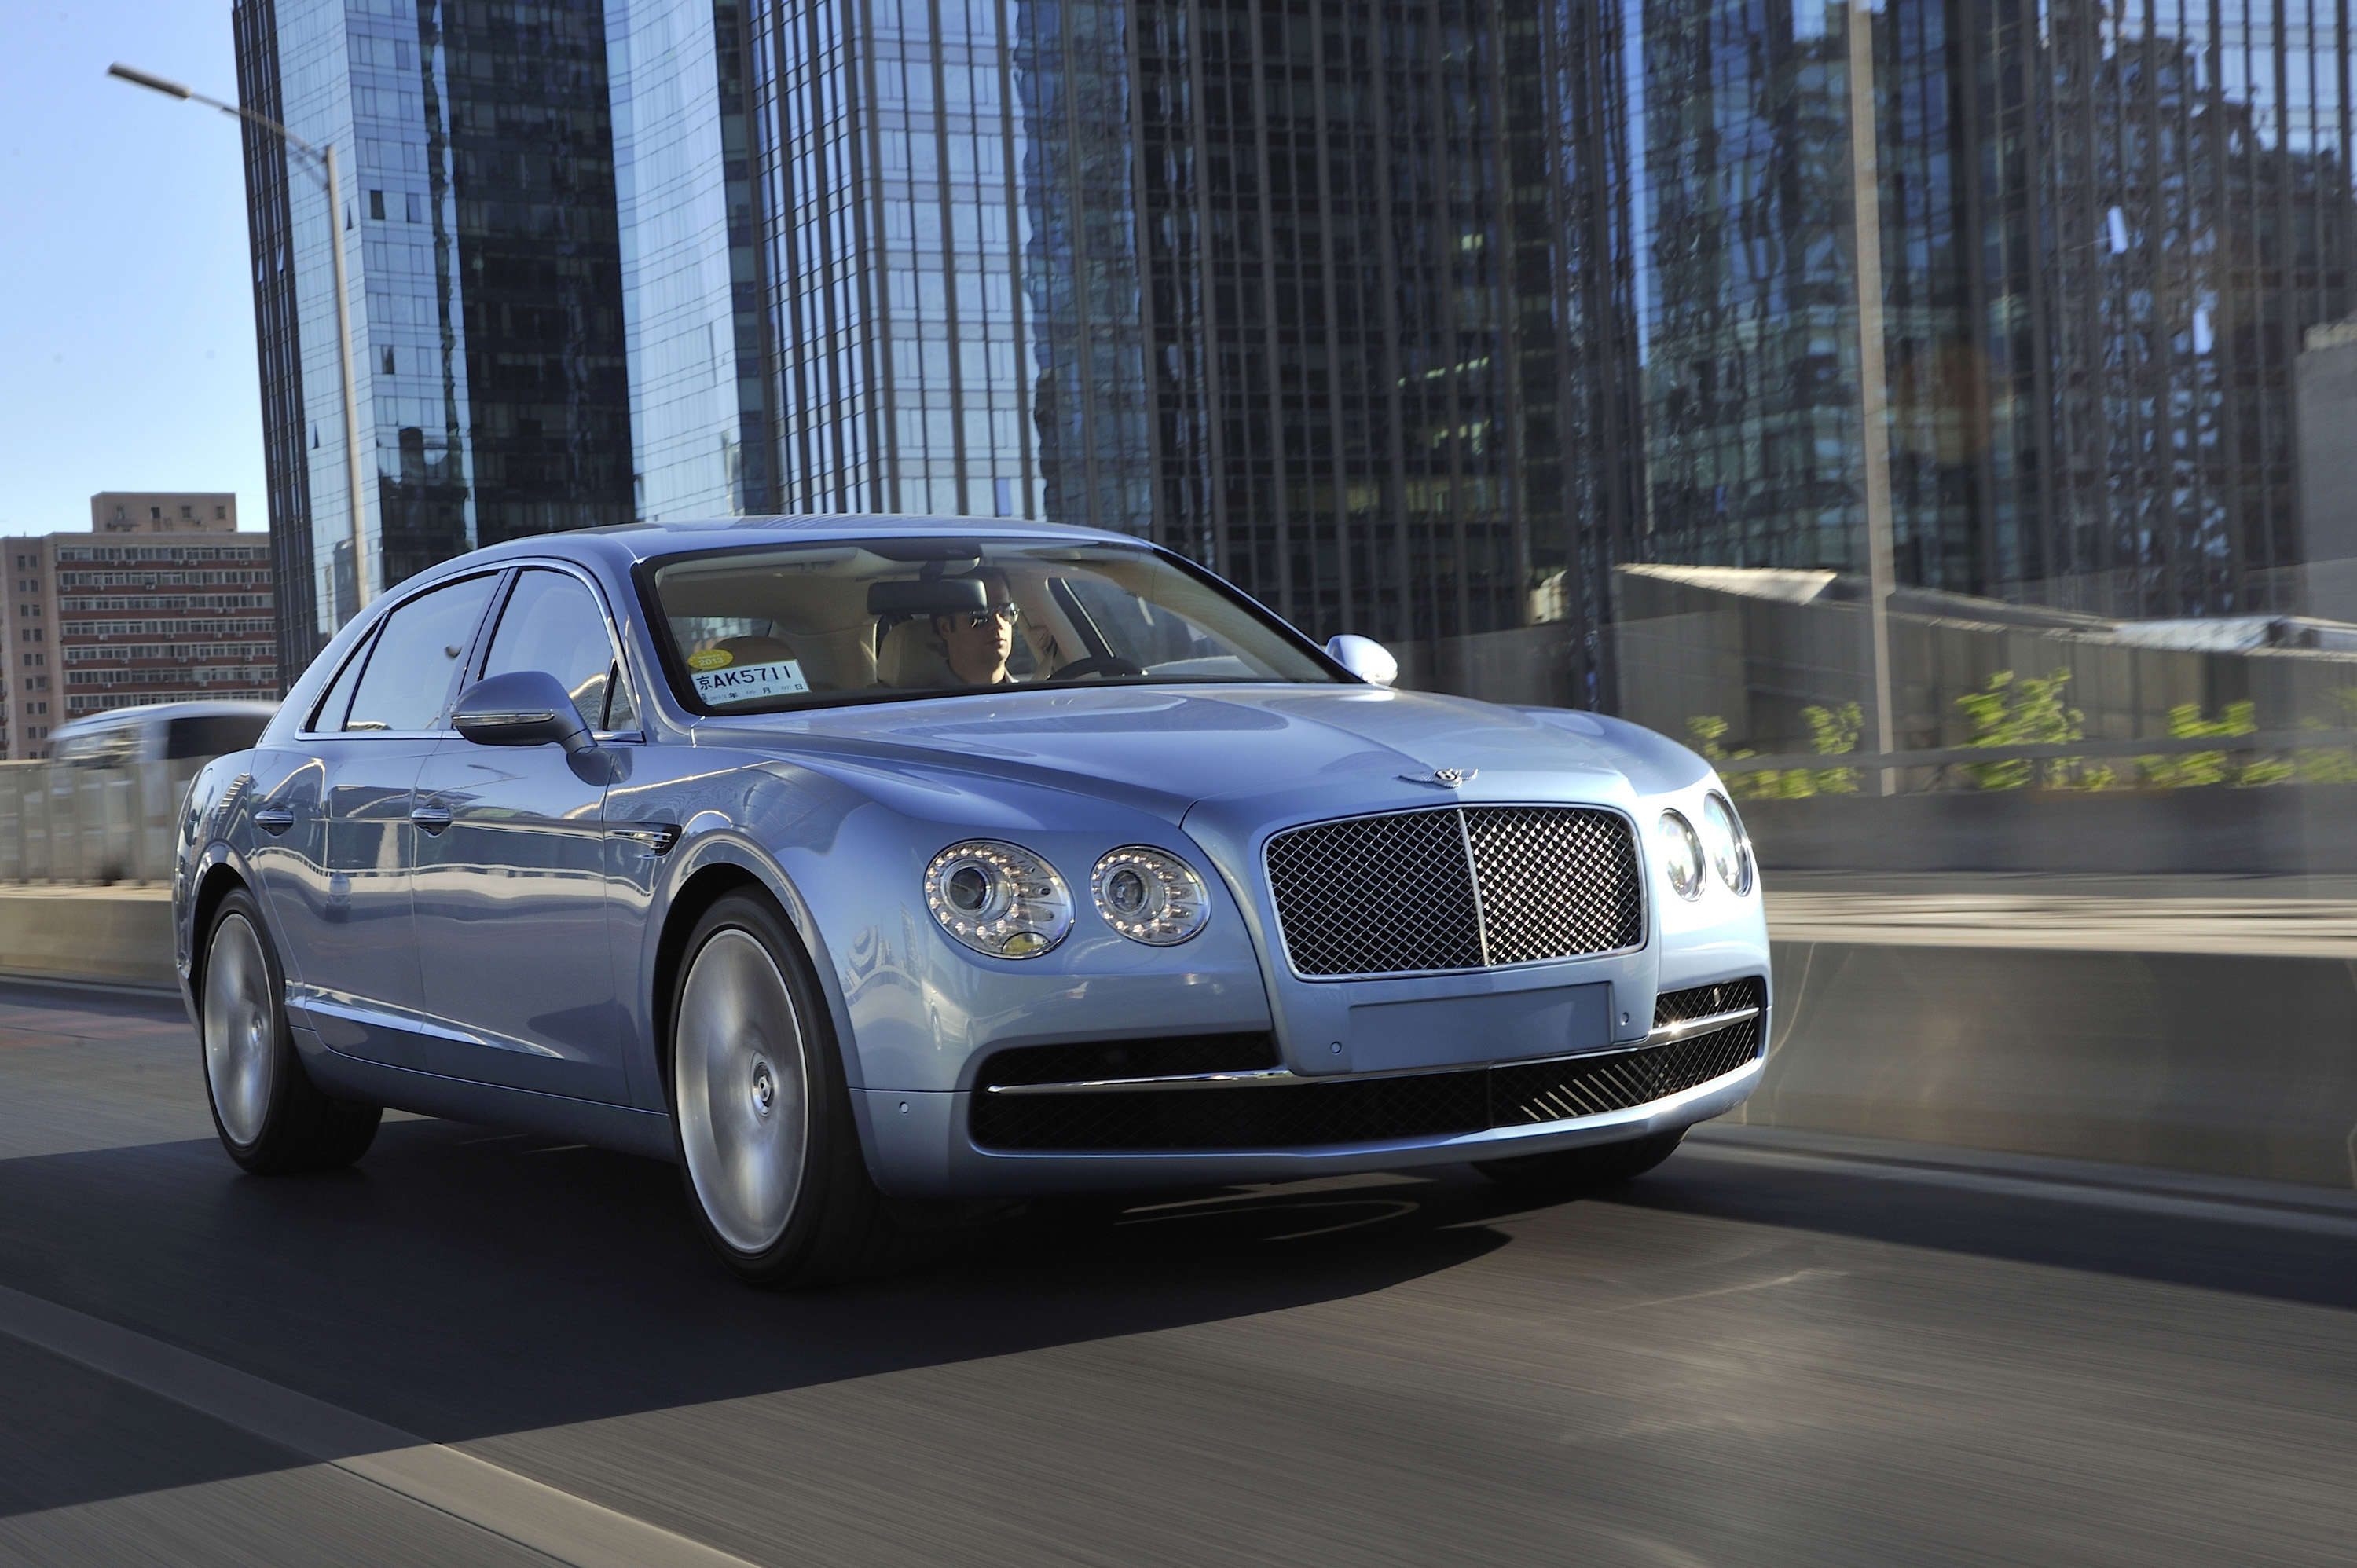 2019 Bentley Flying Spur V8 photo - 3